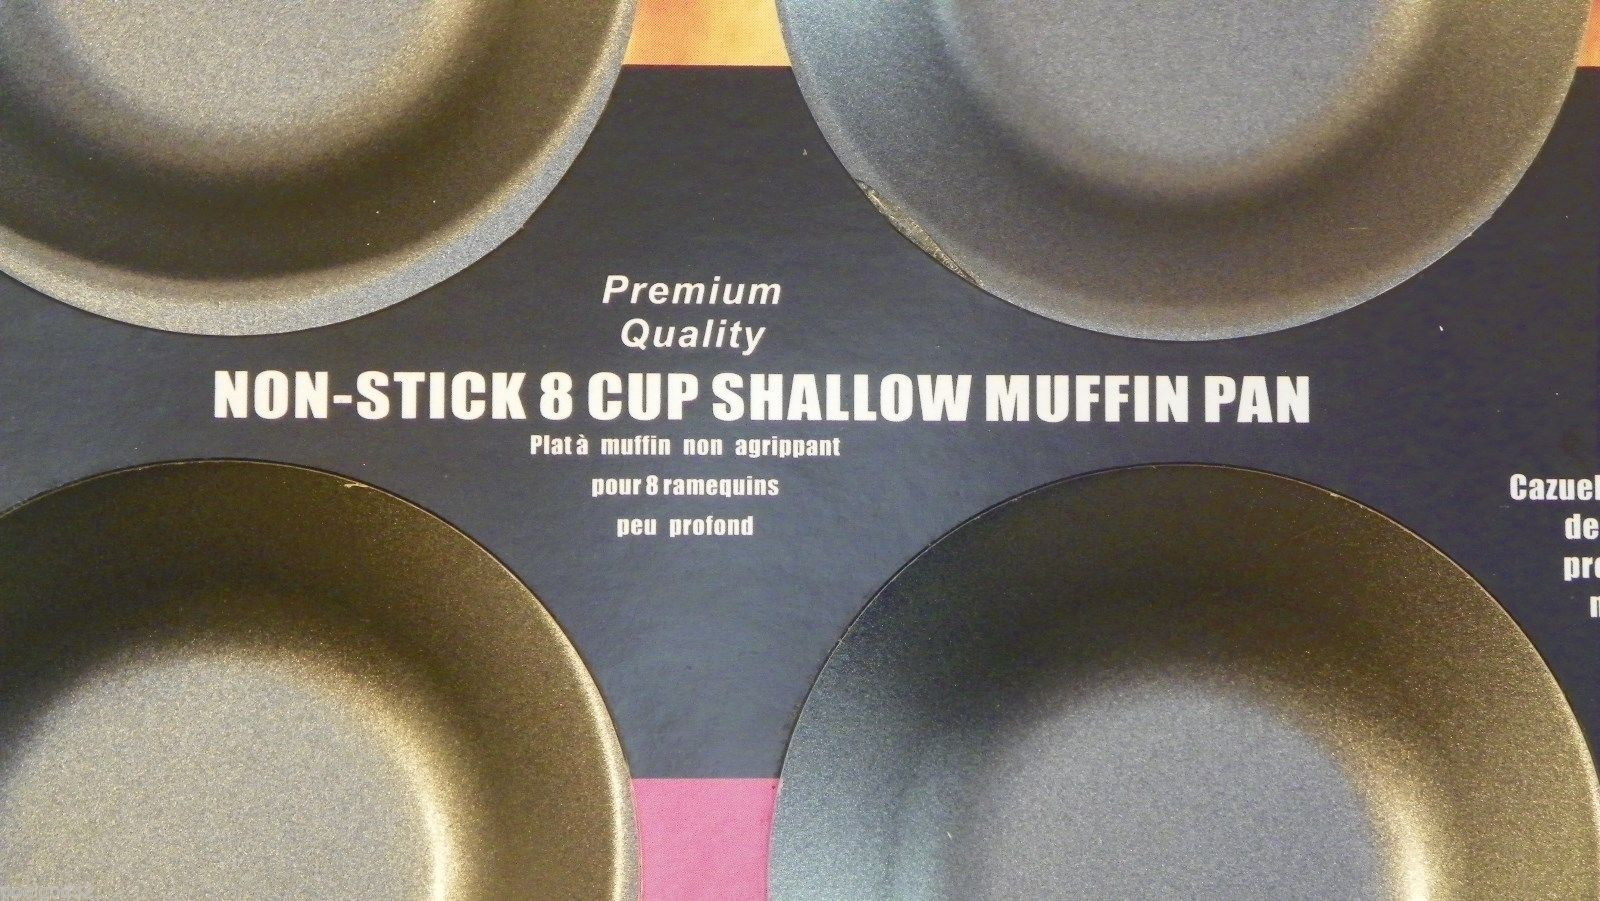 Nonstick 12 cup shallow muffin Top pan Premium Quality Heavy Guage Carbon Steel